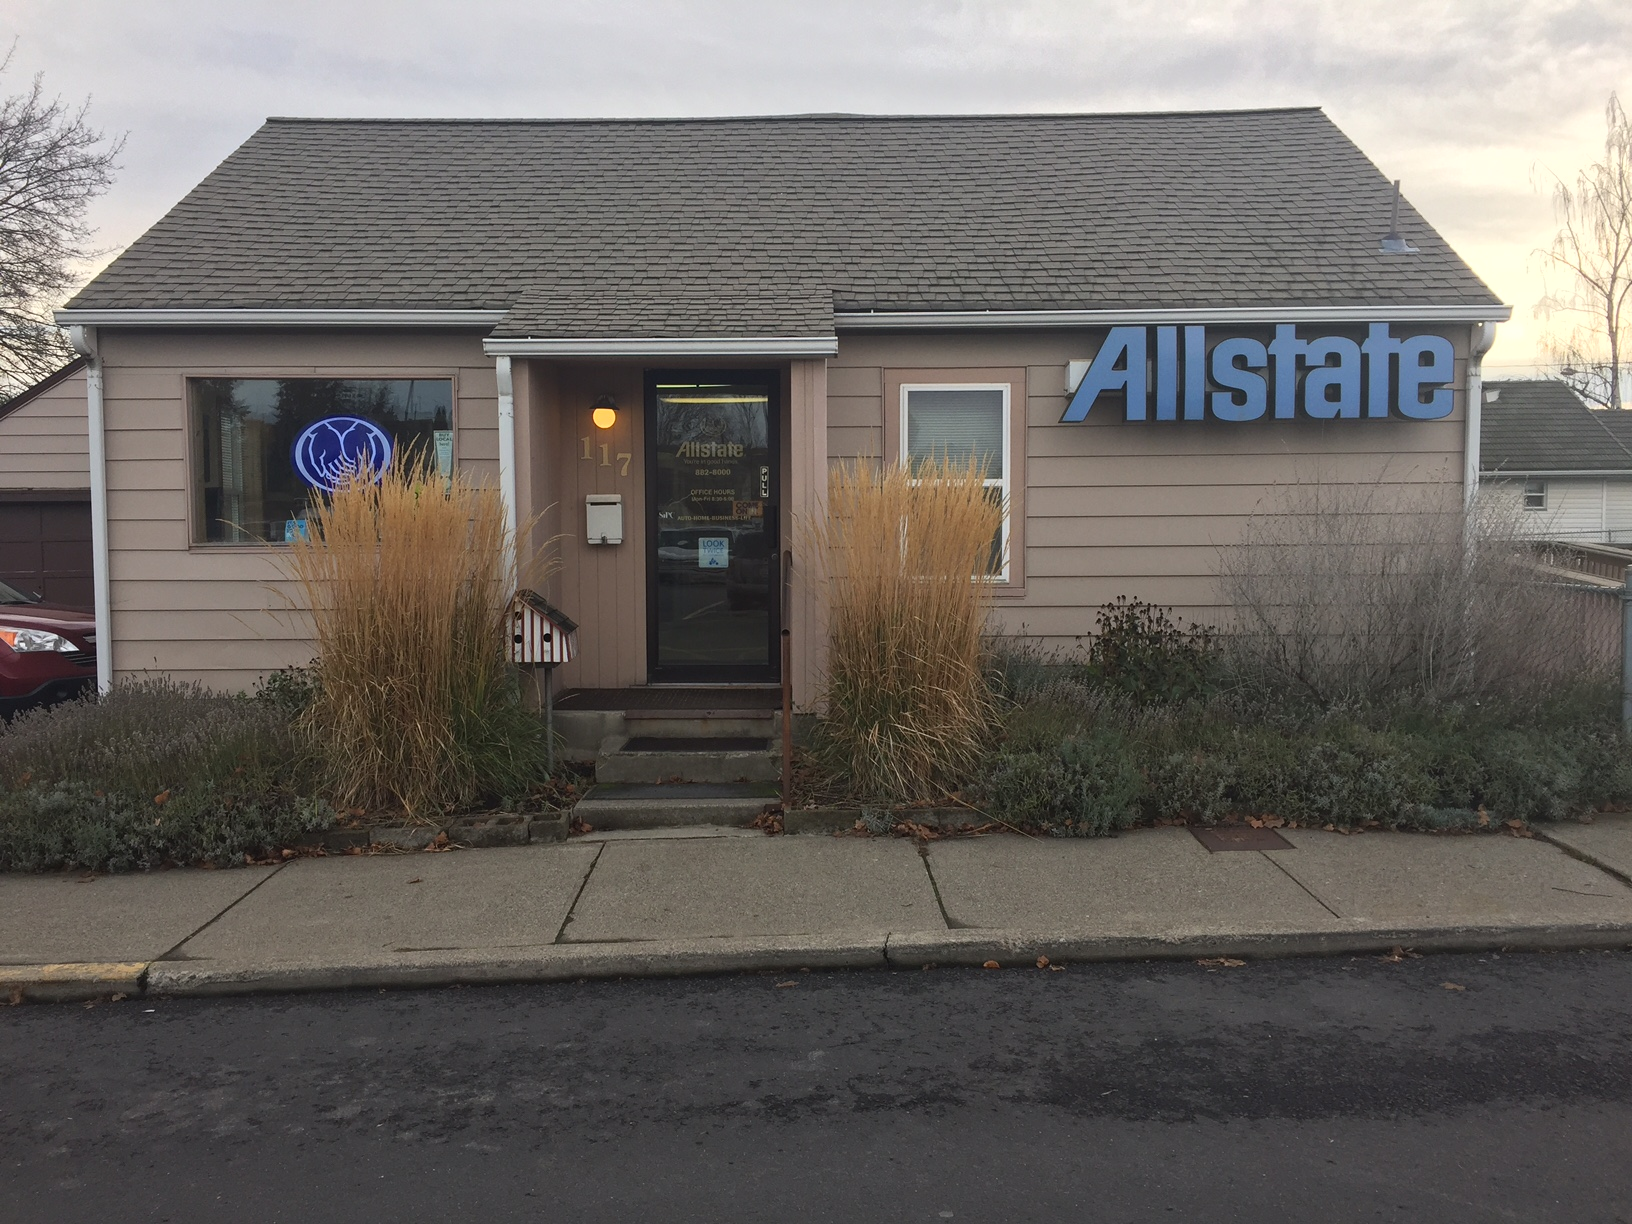 Allstate | Car Insurance in Moscow, ID - Ted Curet